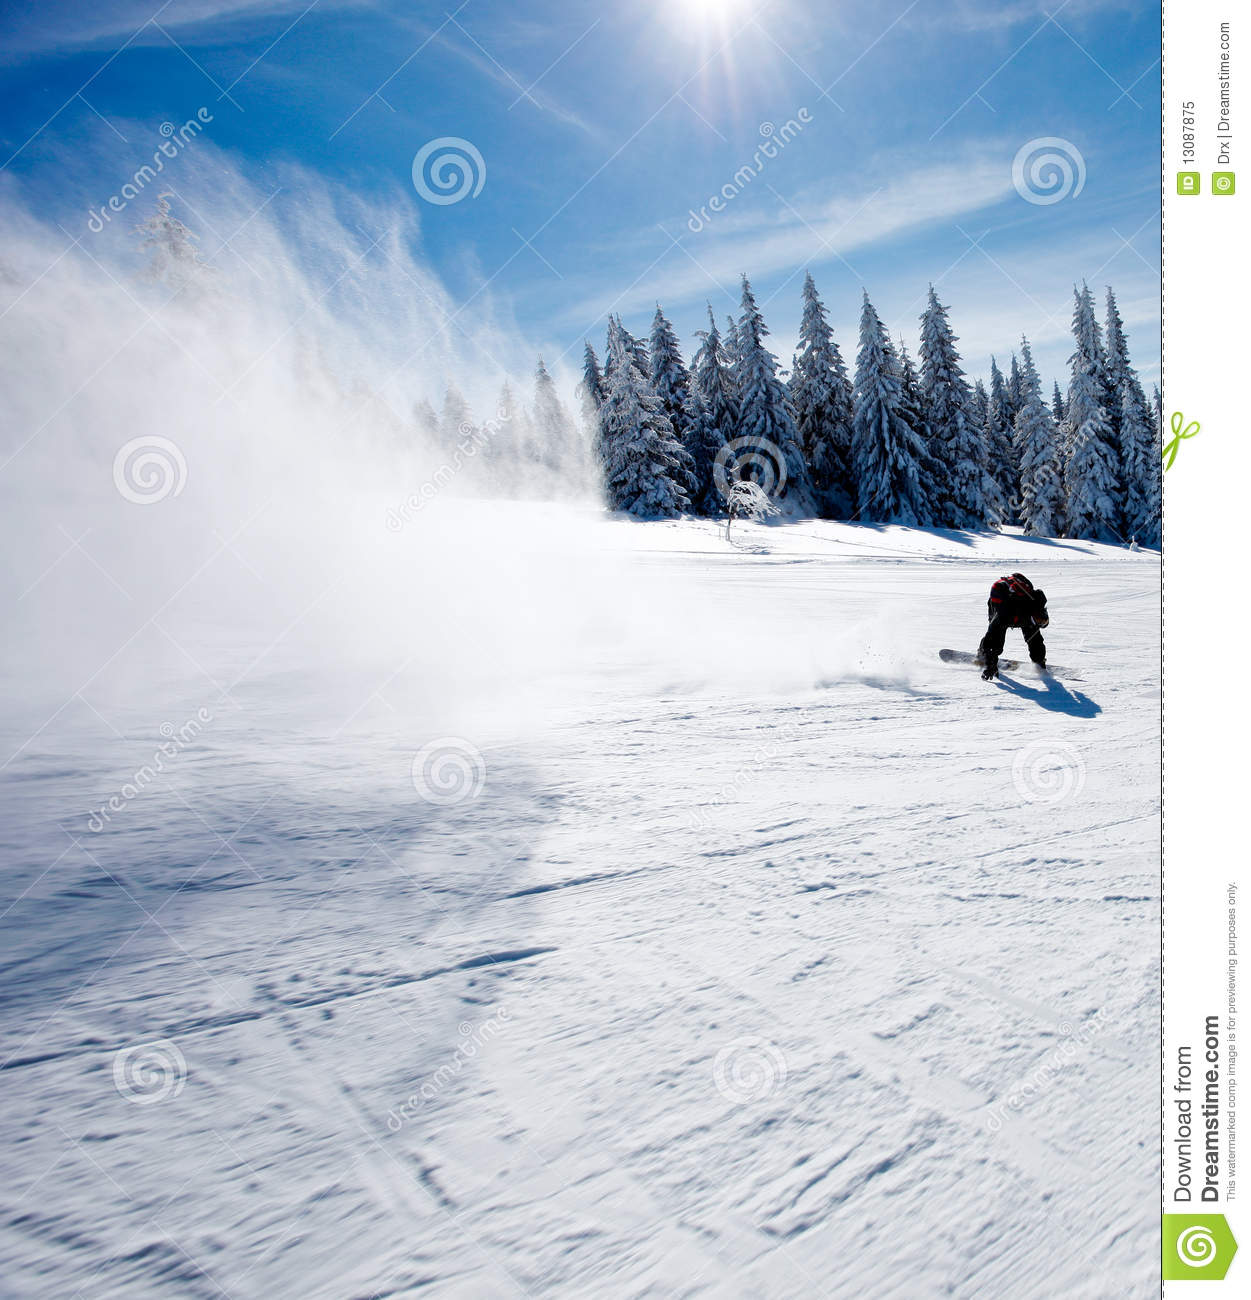 Winter vacation royalty free stock photo image 13087875 for Vacation in the snow